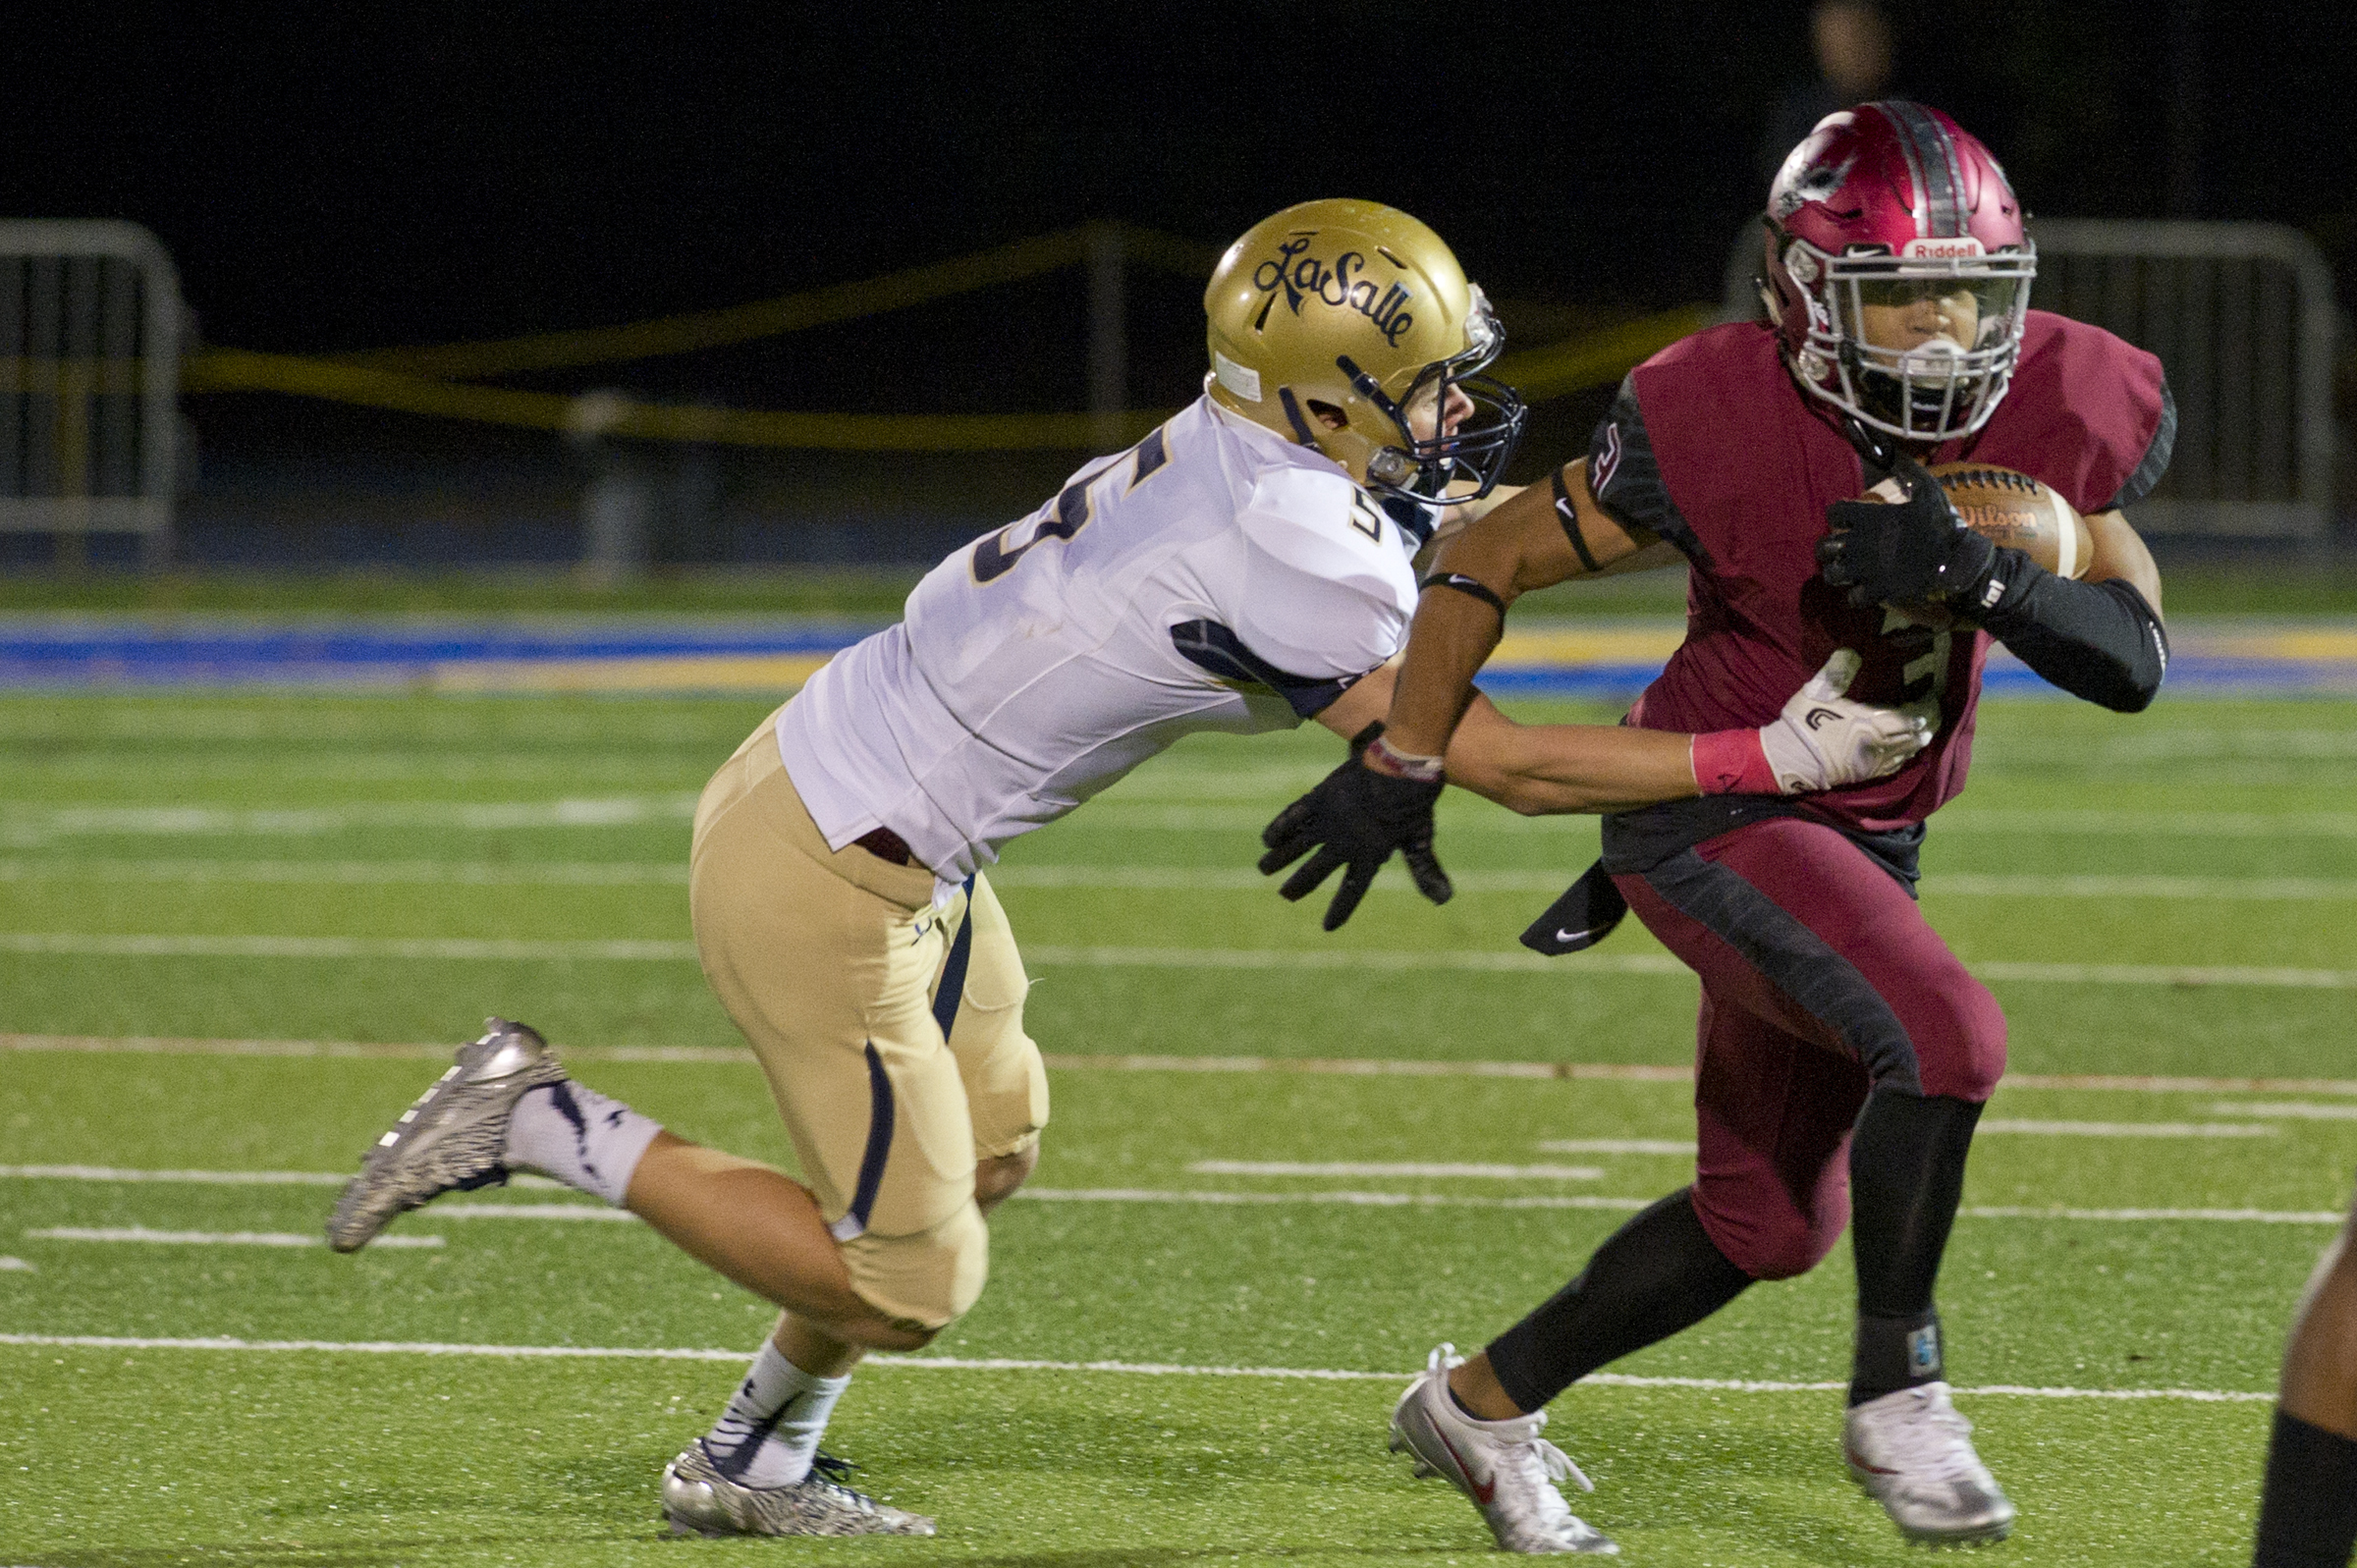 La Salle´s Sean Daly tries to take down St. Joseph´s Prep wide receiver James Cherry in a Catholic League game last season. ´s James Cherry during the first half of Friday night´s football game at Quick Stadium on the campus of Widener University in Chester, PA. Avi Steinhardt / For the Philadelphia Inquirer